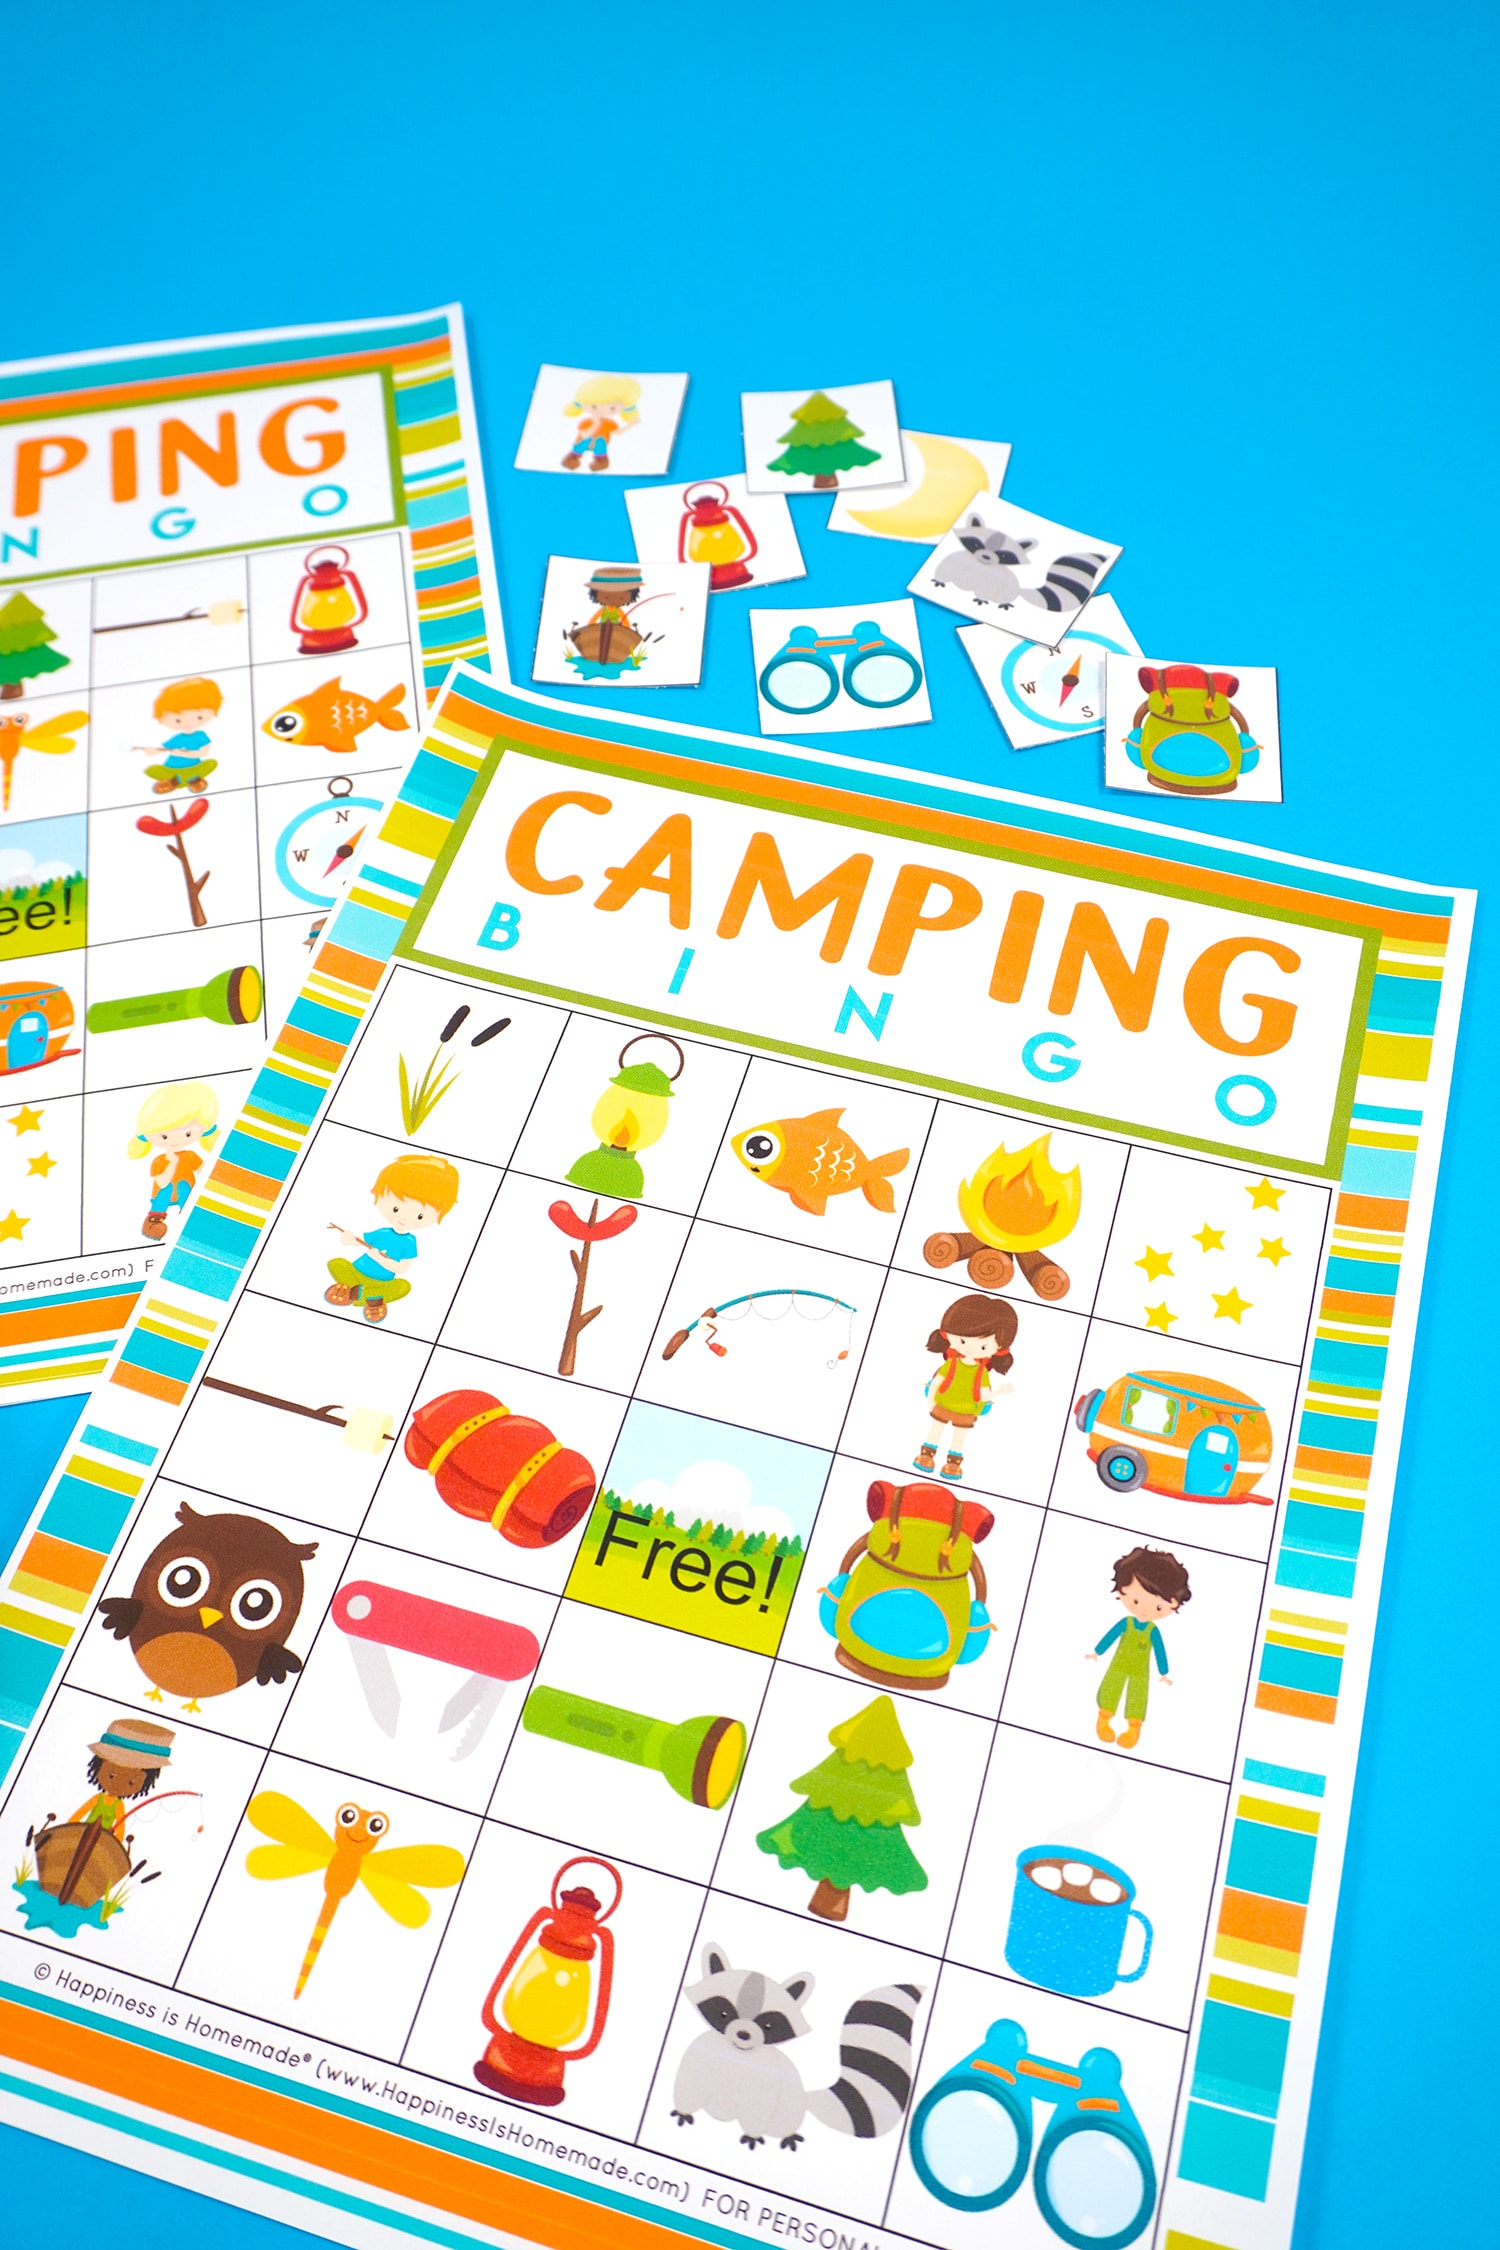 Two Camping Bingo Printable game cards on a blue background with scattered calling cards